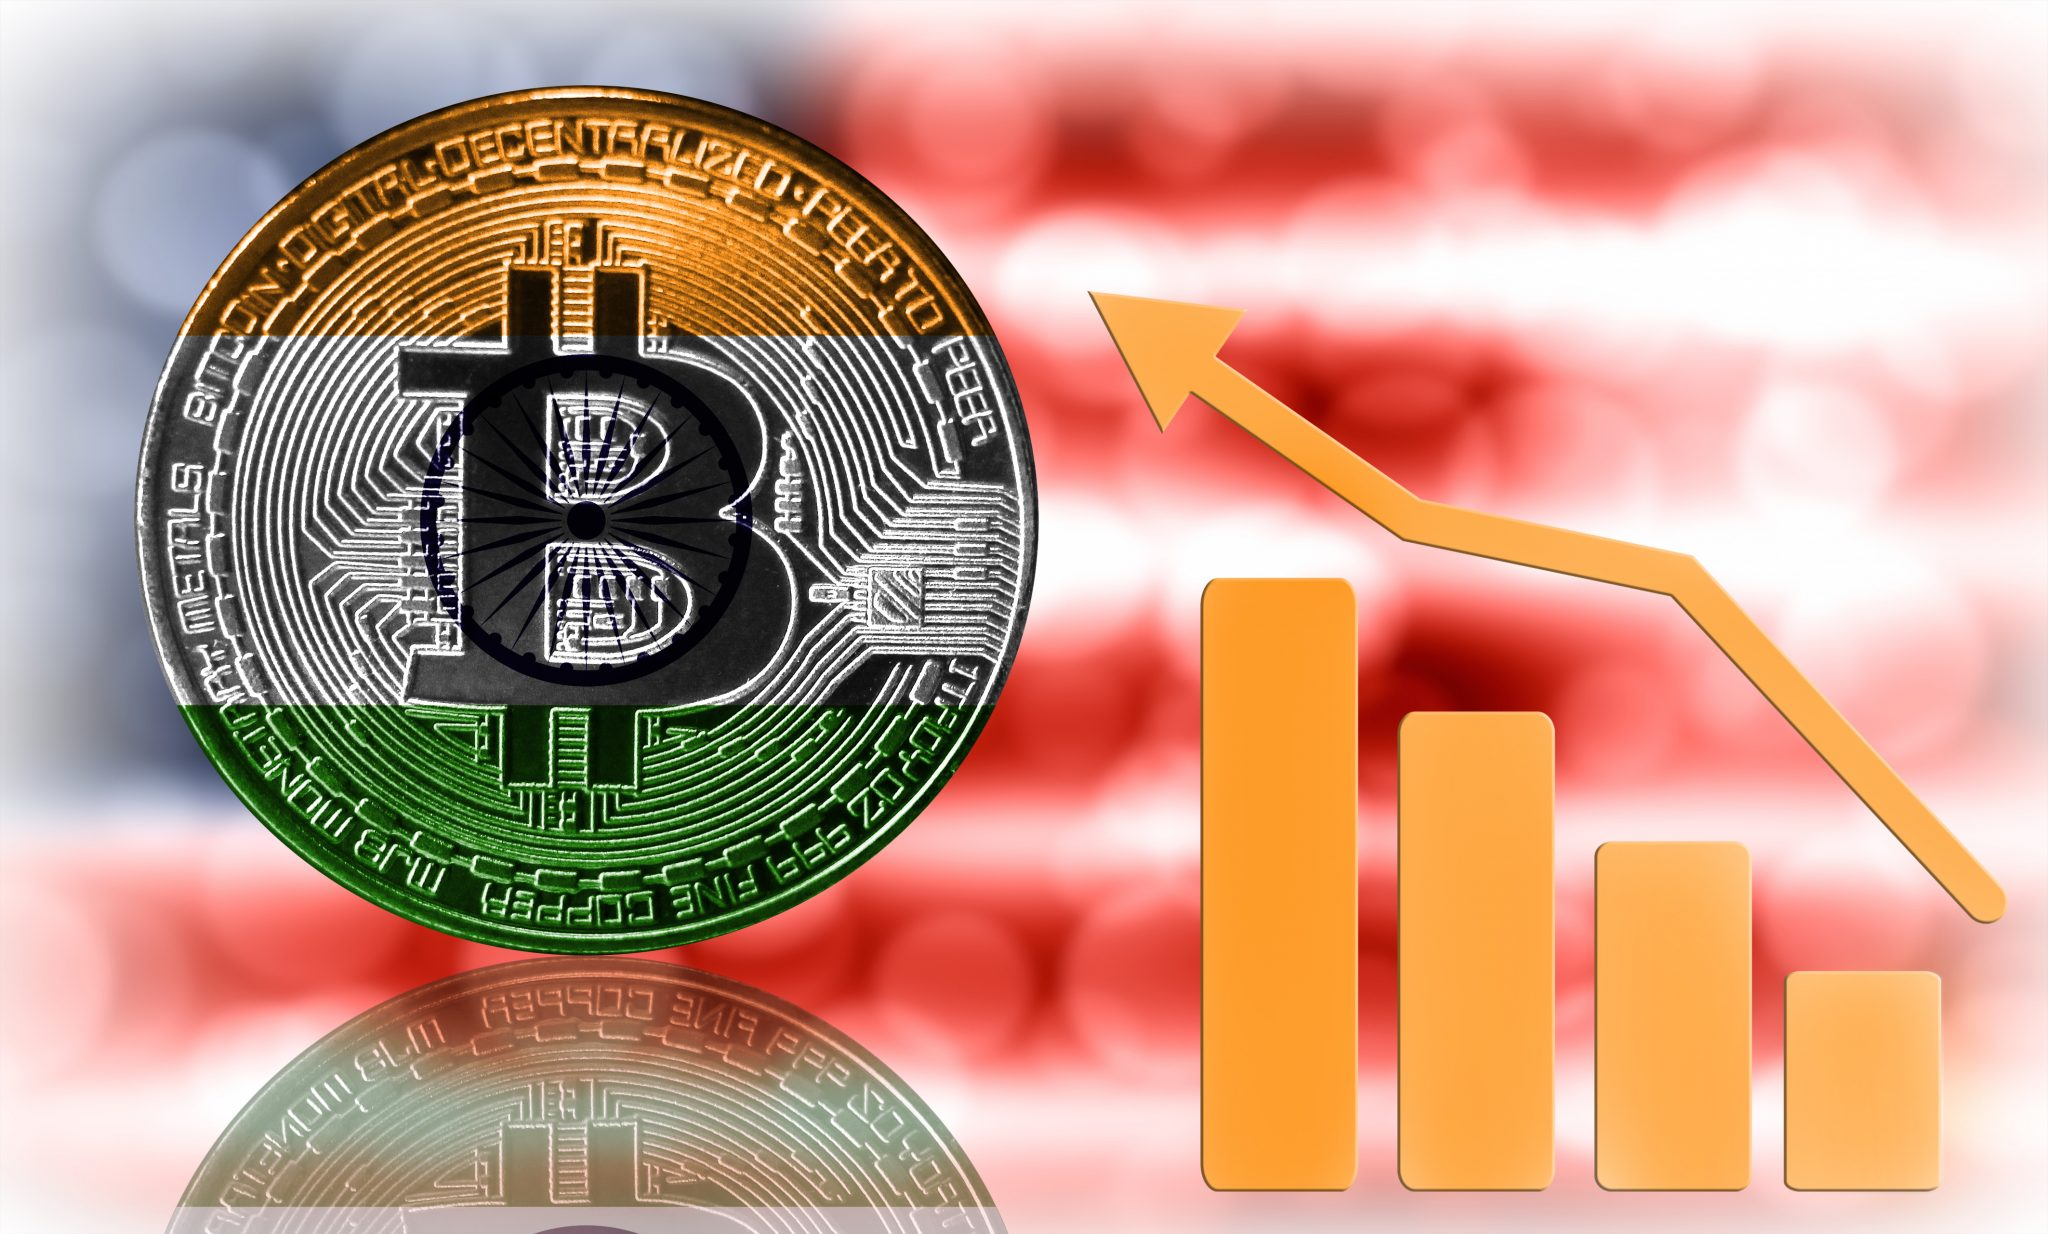 Bitcoin close-up on a blurred background, the India flag is shown on the bitcoin. Also the growth chart is shown.